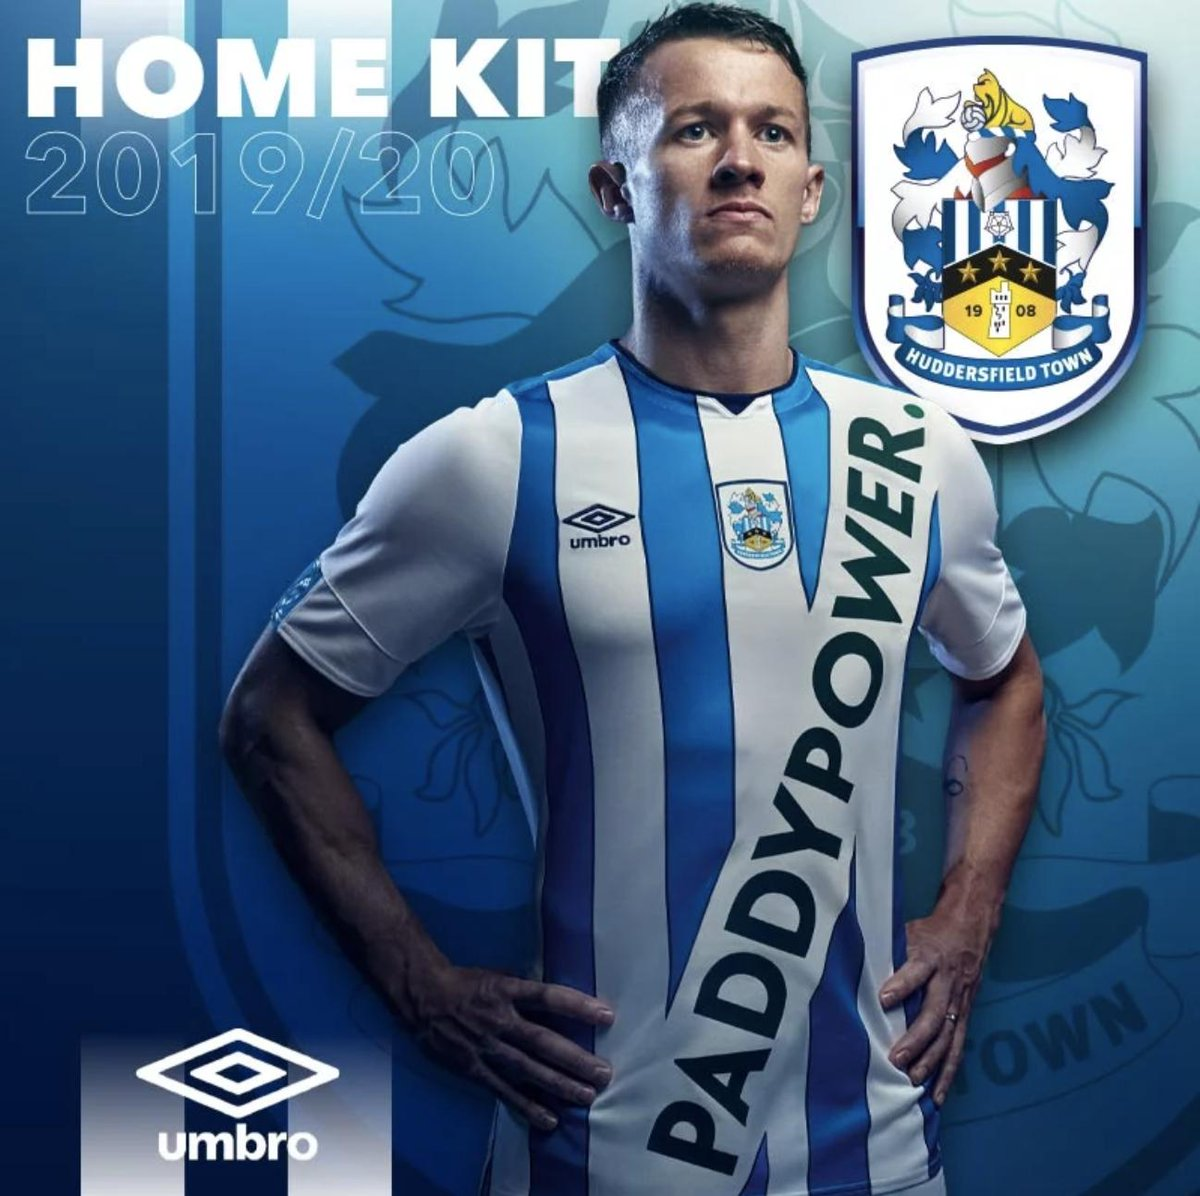 Huddersfields new kit is nothing compared to Man Uniteds new one 🤣😂